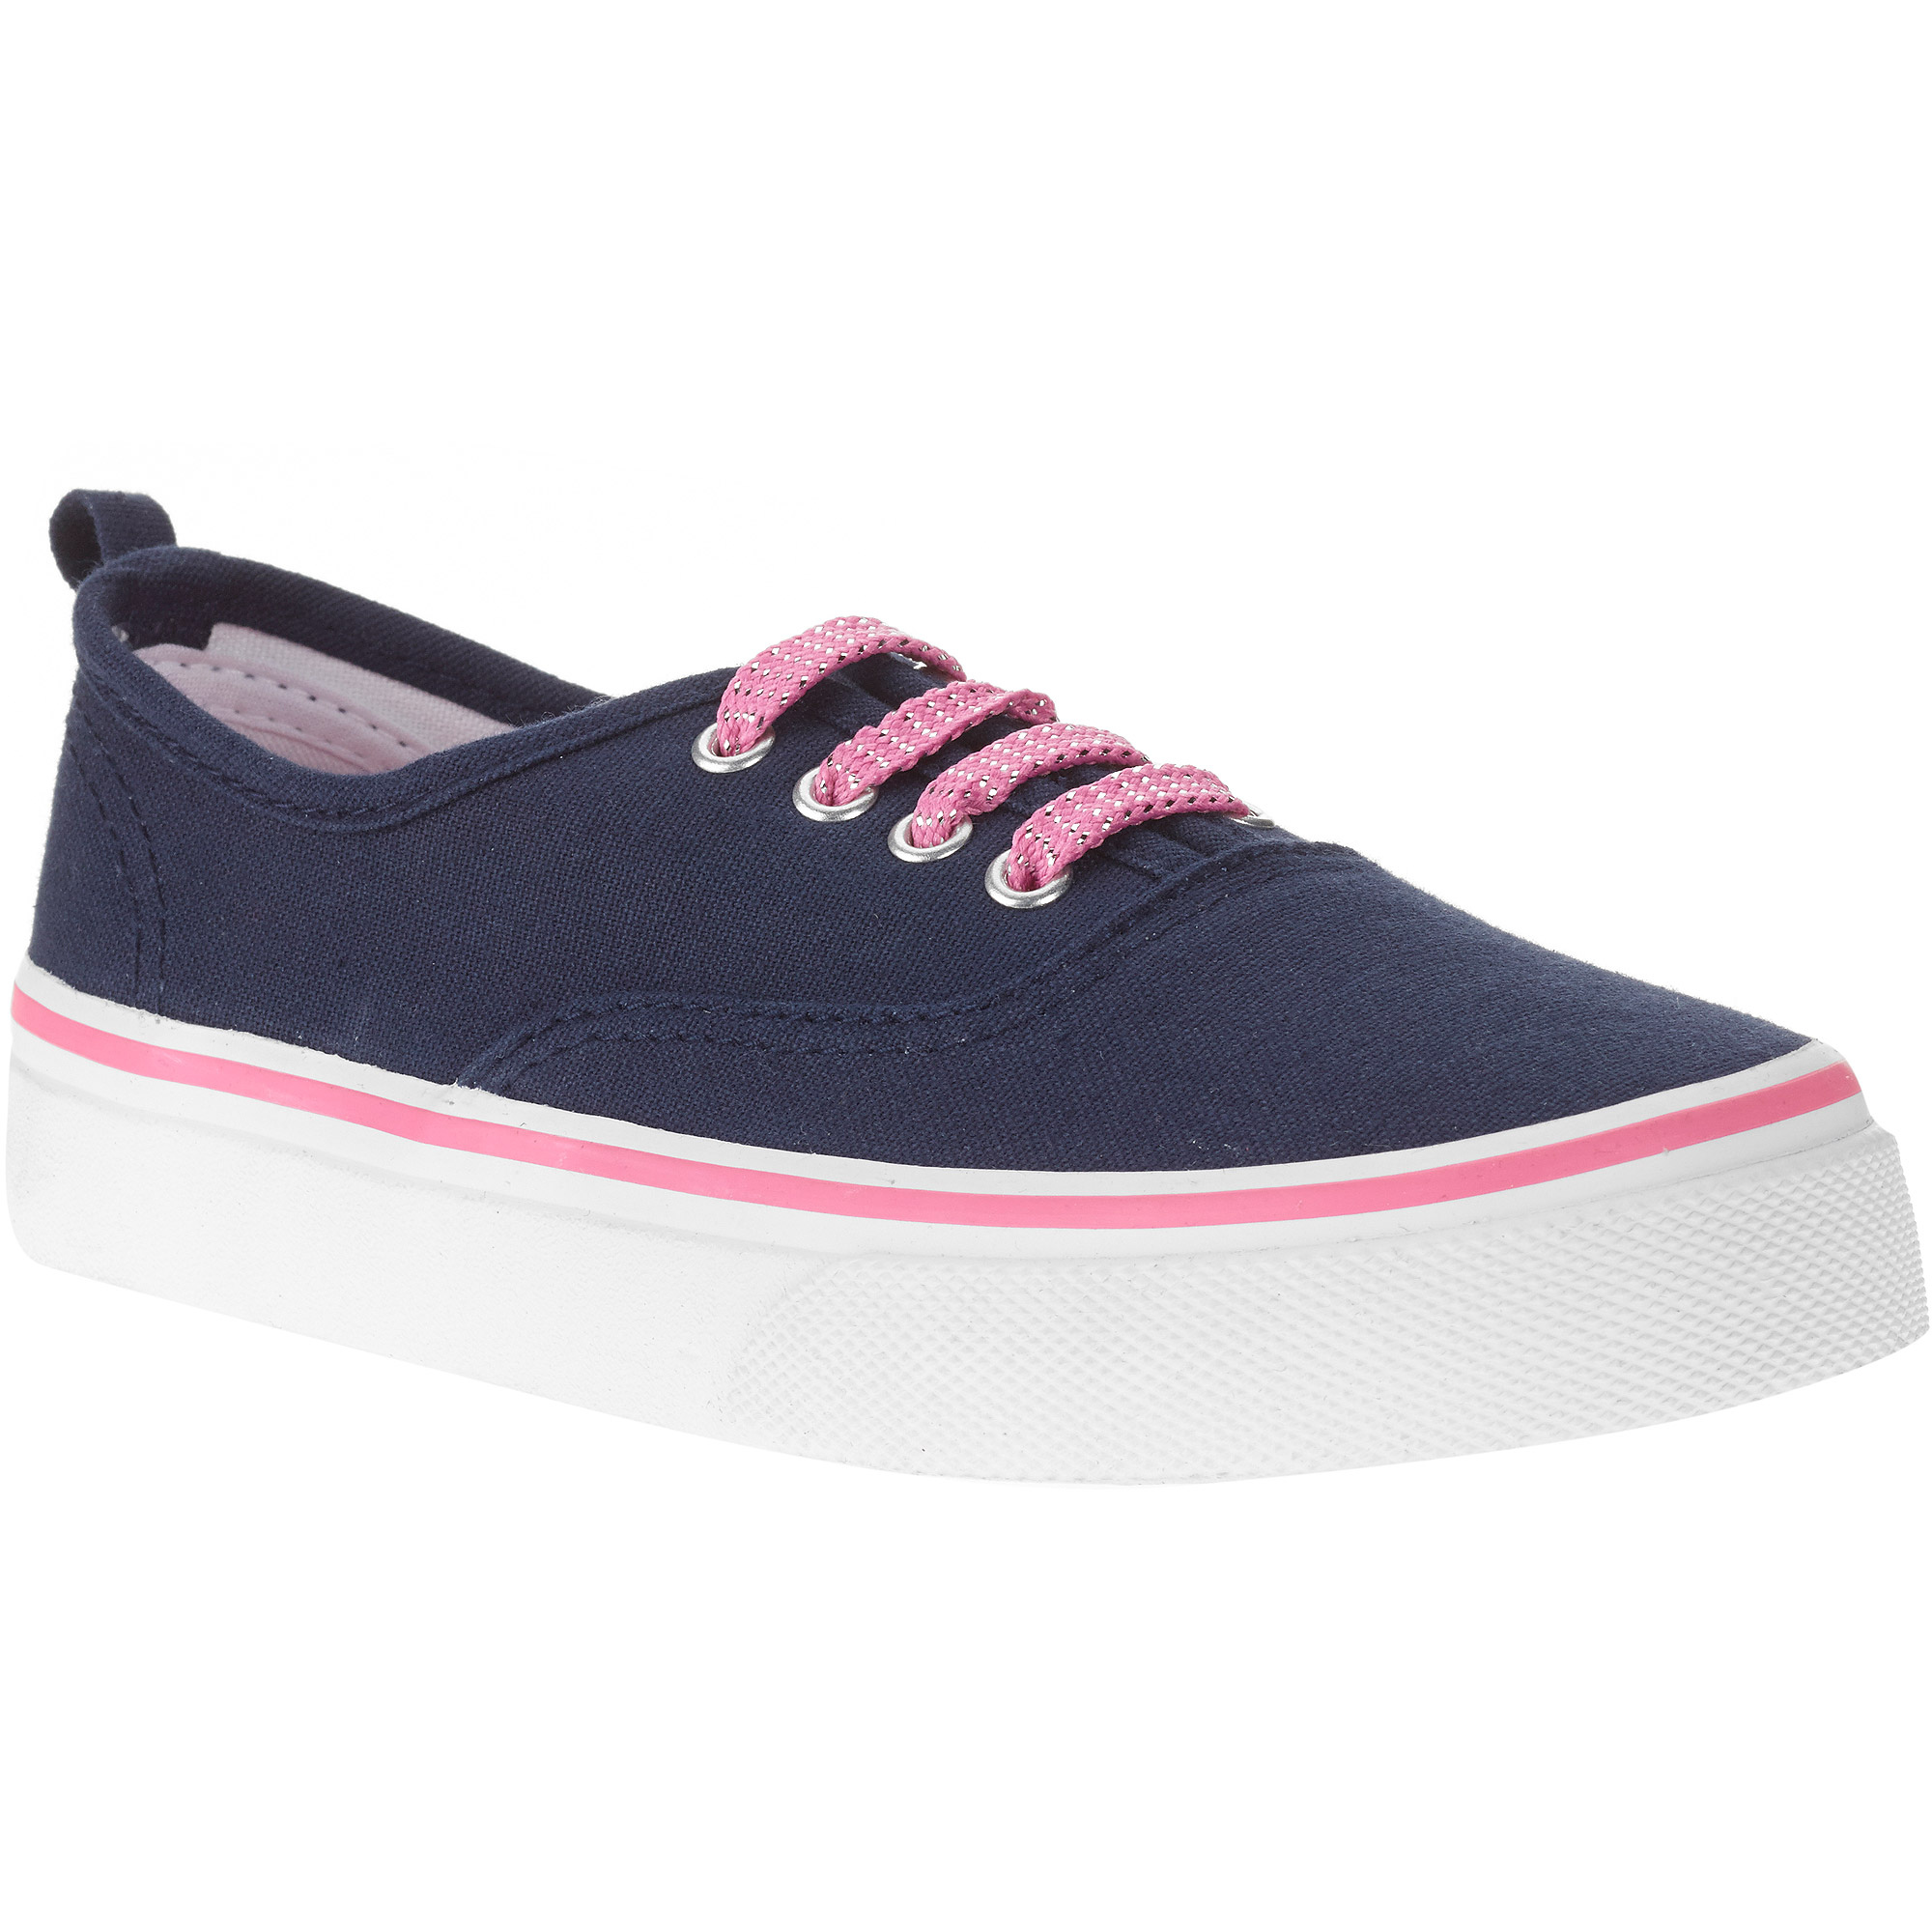 Faded Glory Girl'S Canvas Lace-Up Sneaker